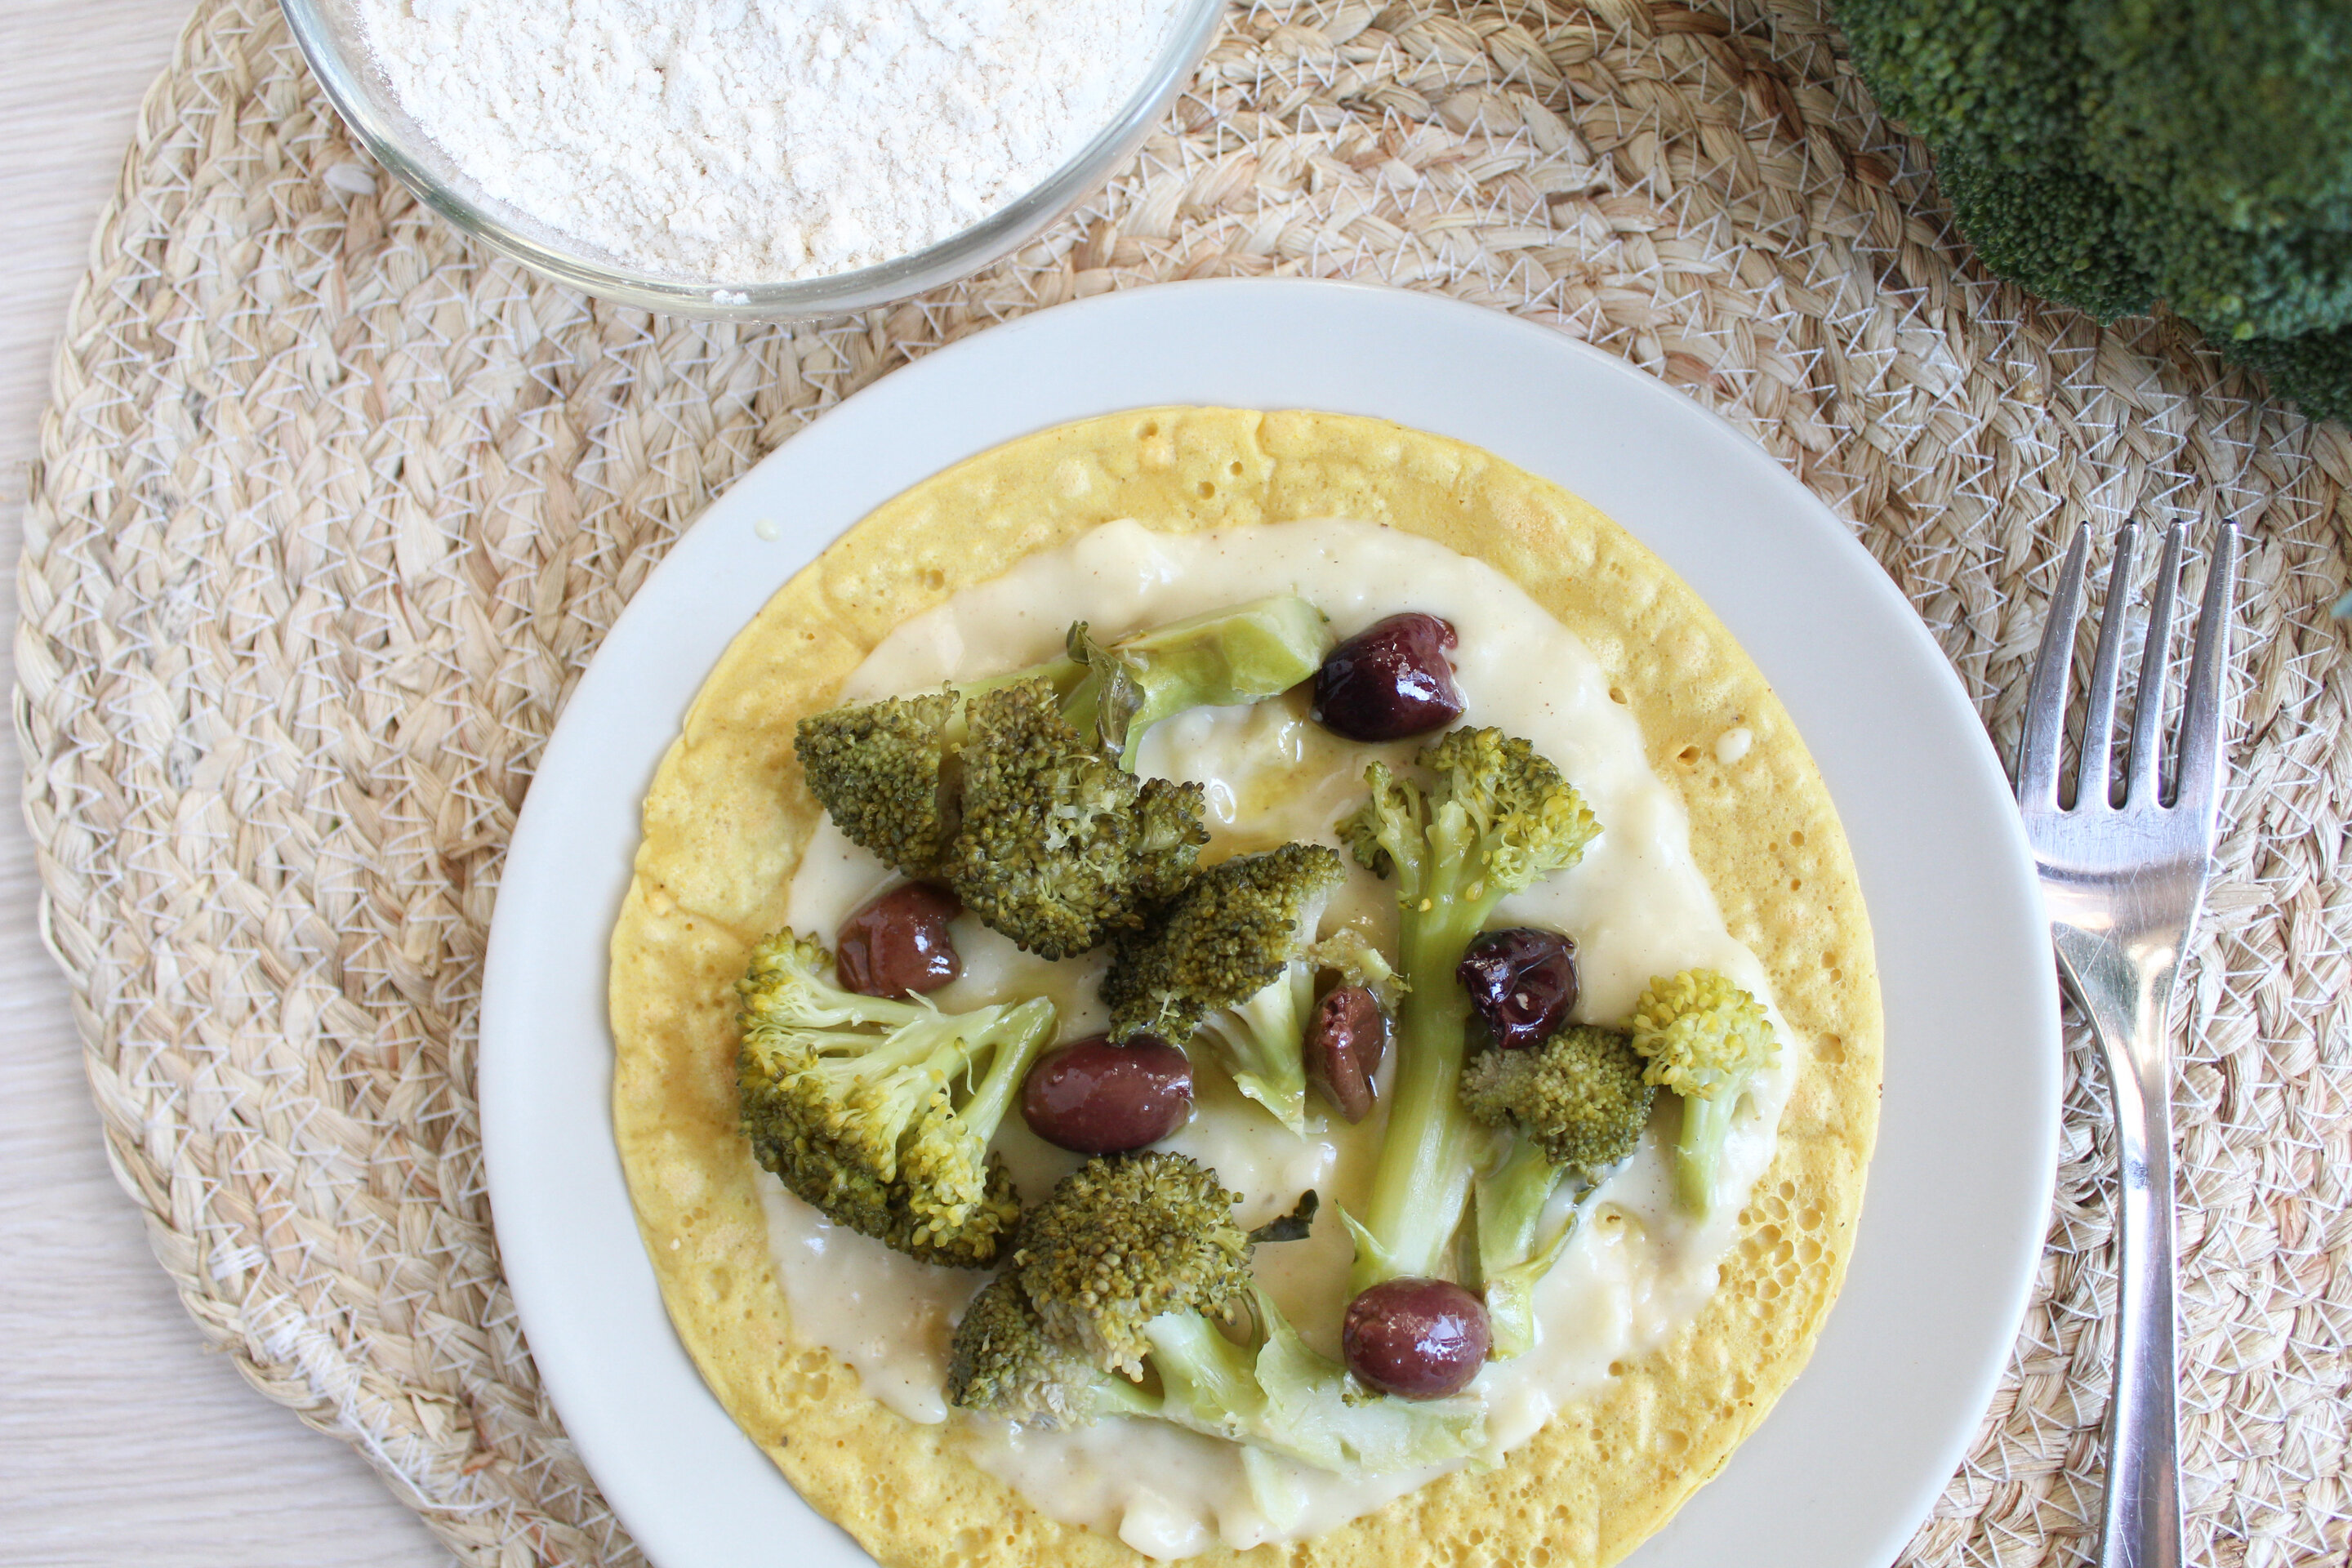 Crespelle al curry con broccoli e olive